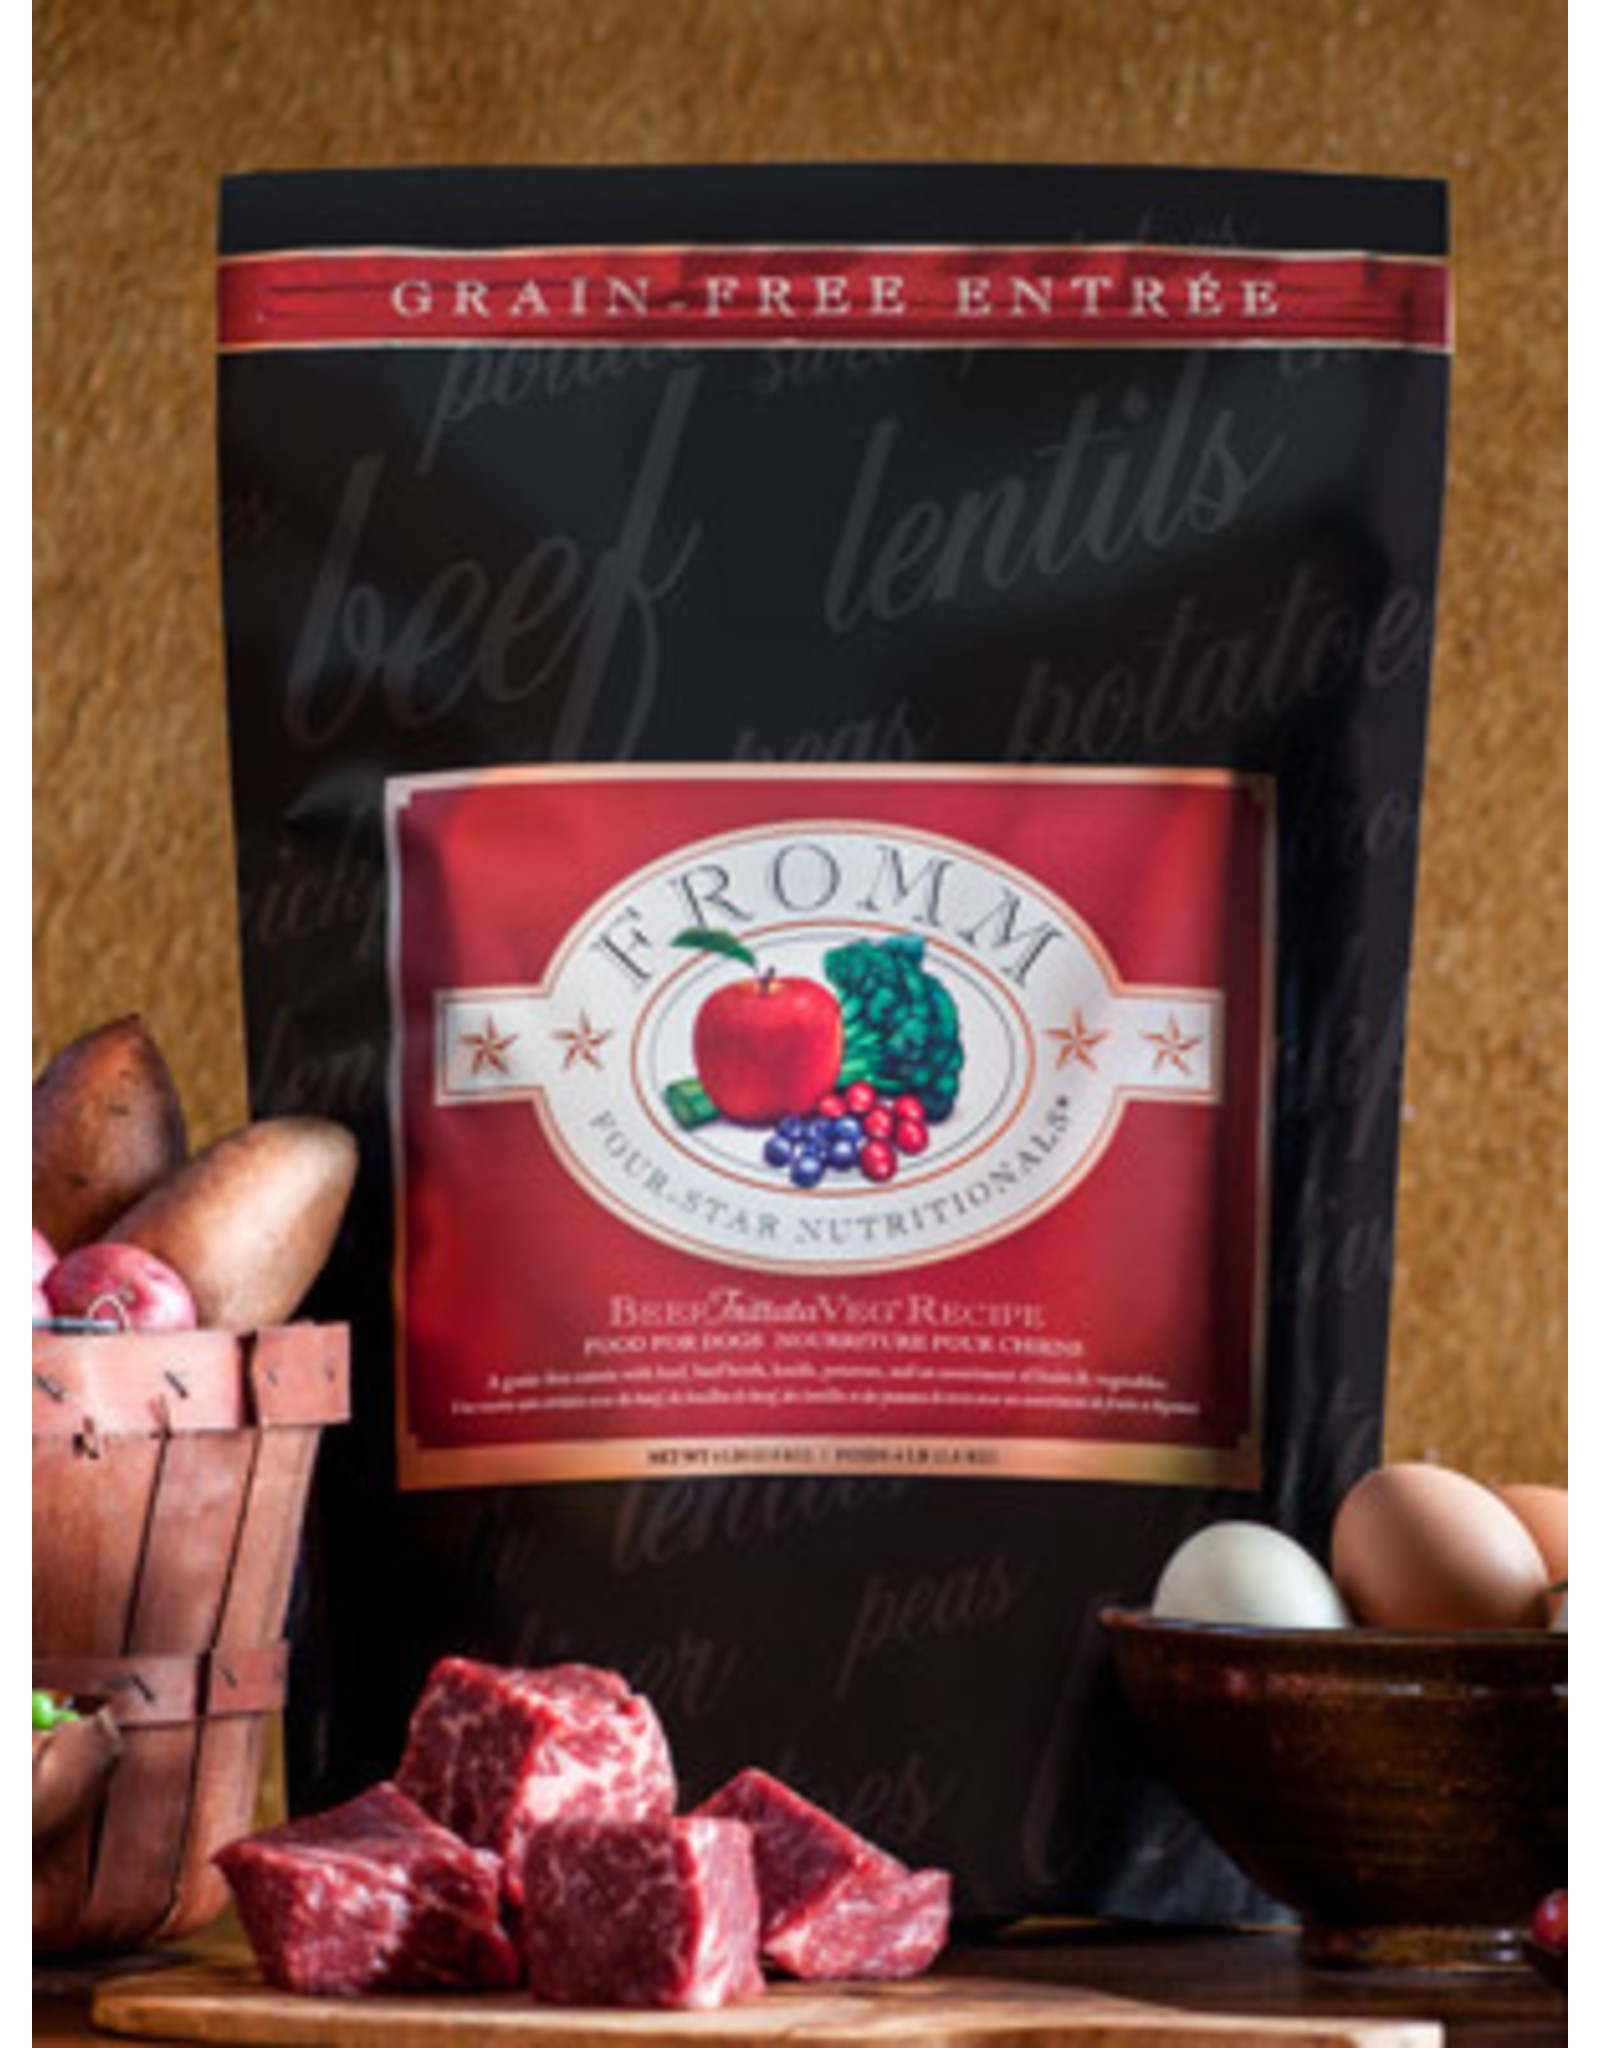 Fromm Fromm Dry Dog Food 4Star Beef Frittata Veg Recipe Beef, Lentils, Potatoes, & Fruits & Vegetables Grain Free